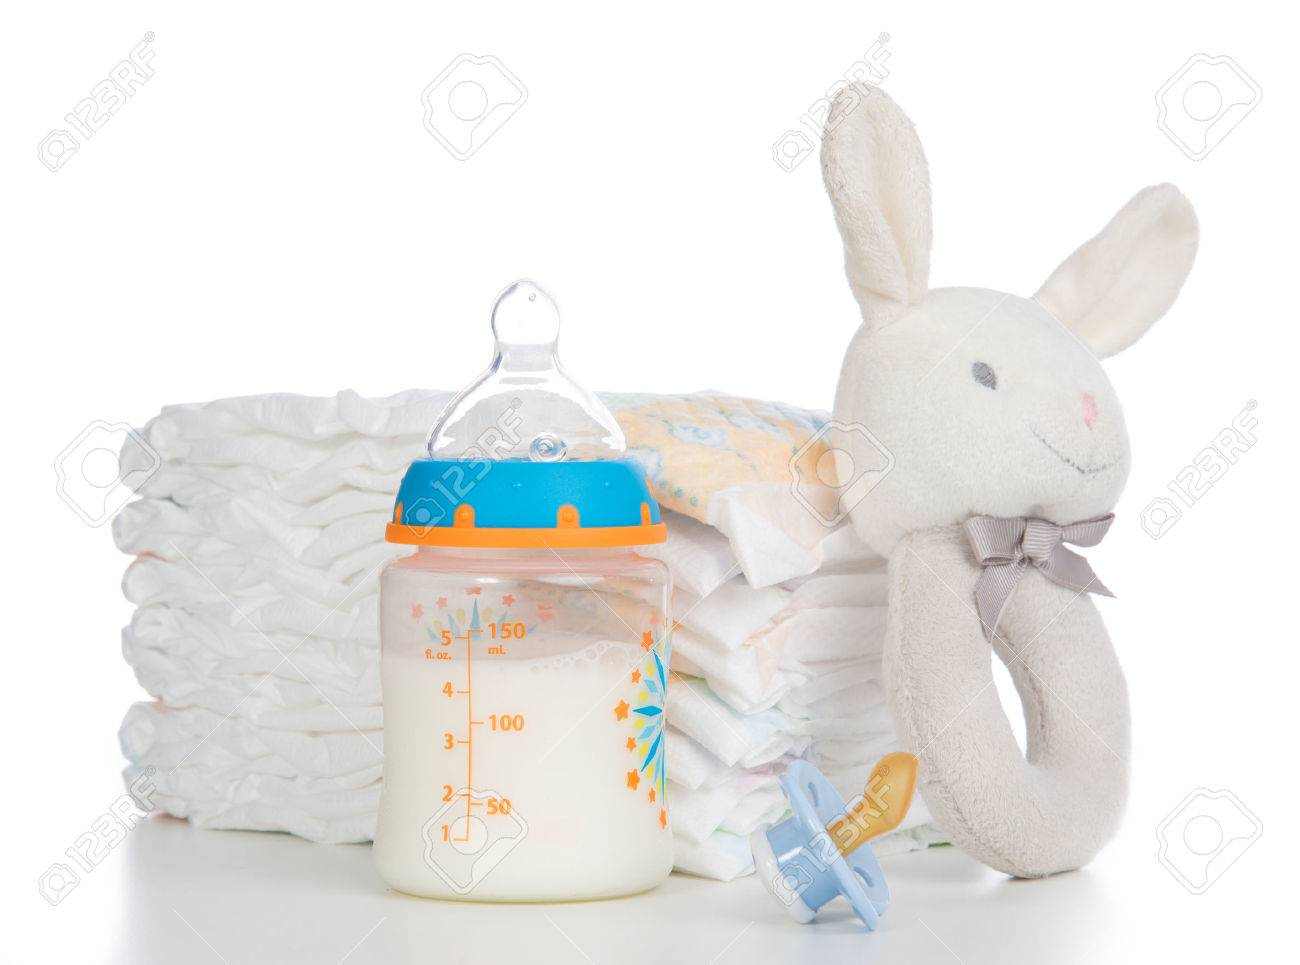 New born child stack of diapers, nipple soother, beanbag bunny toy and baby feeding bottle with milk on a white background Stock Photo - 26134317